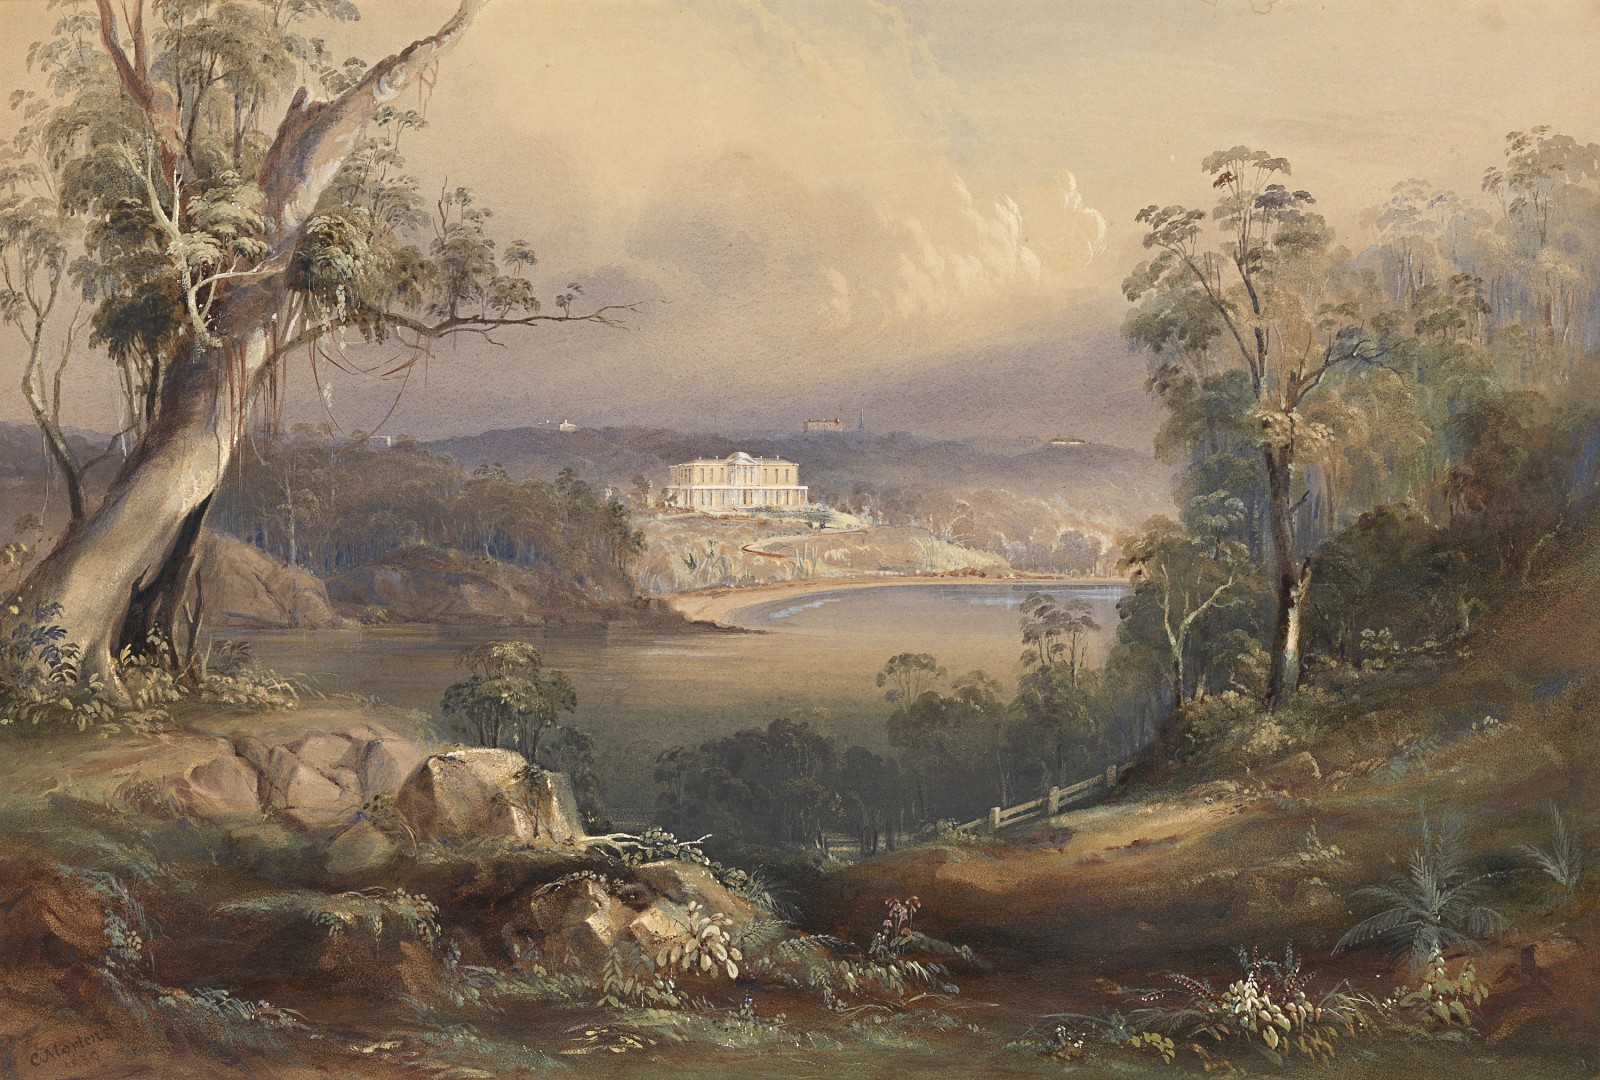 Elizabeth Bay and Elizabeth Bay House 1839. Conrad Martens born England 1801, arrived Australia 1835, died 1878 - watercolour 46.1 x 66.3cm. National Gallery of Victoria, Melbourne, Felton Bequest, 1950.